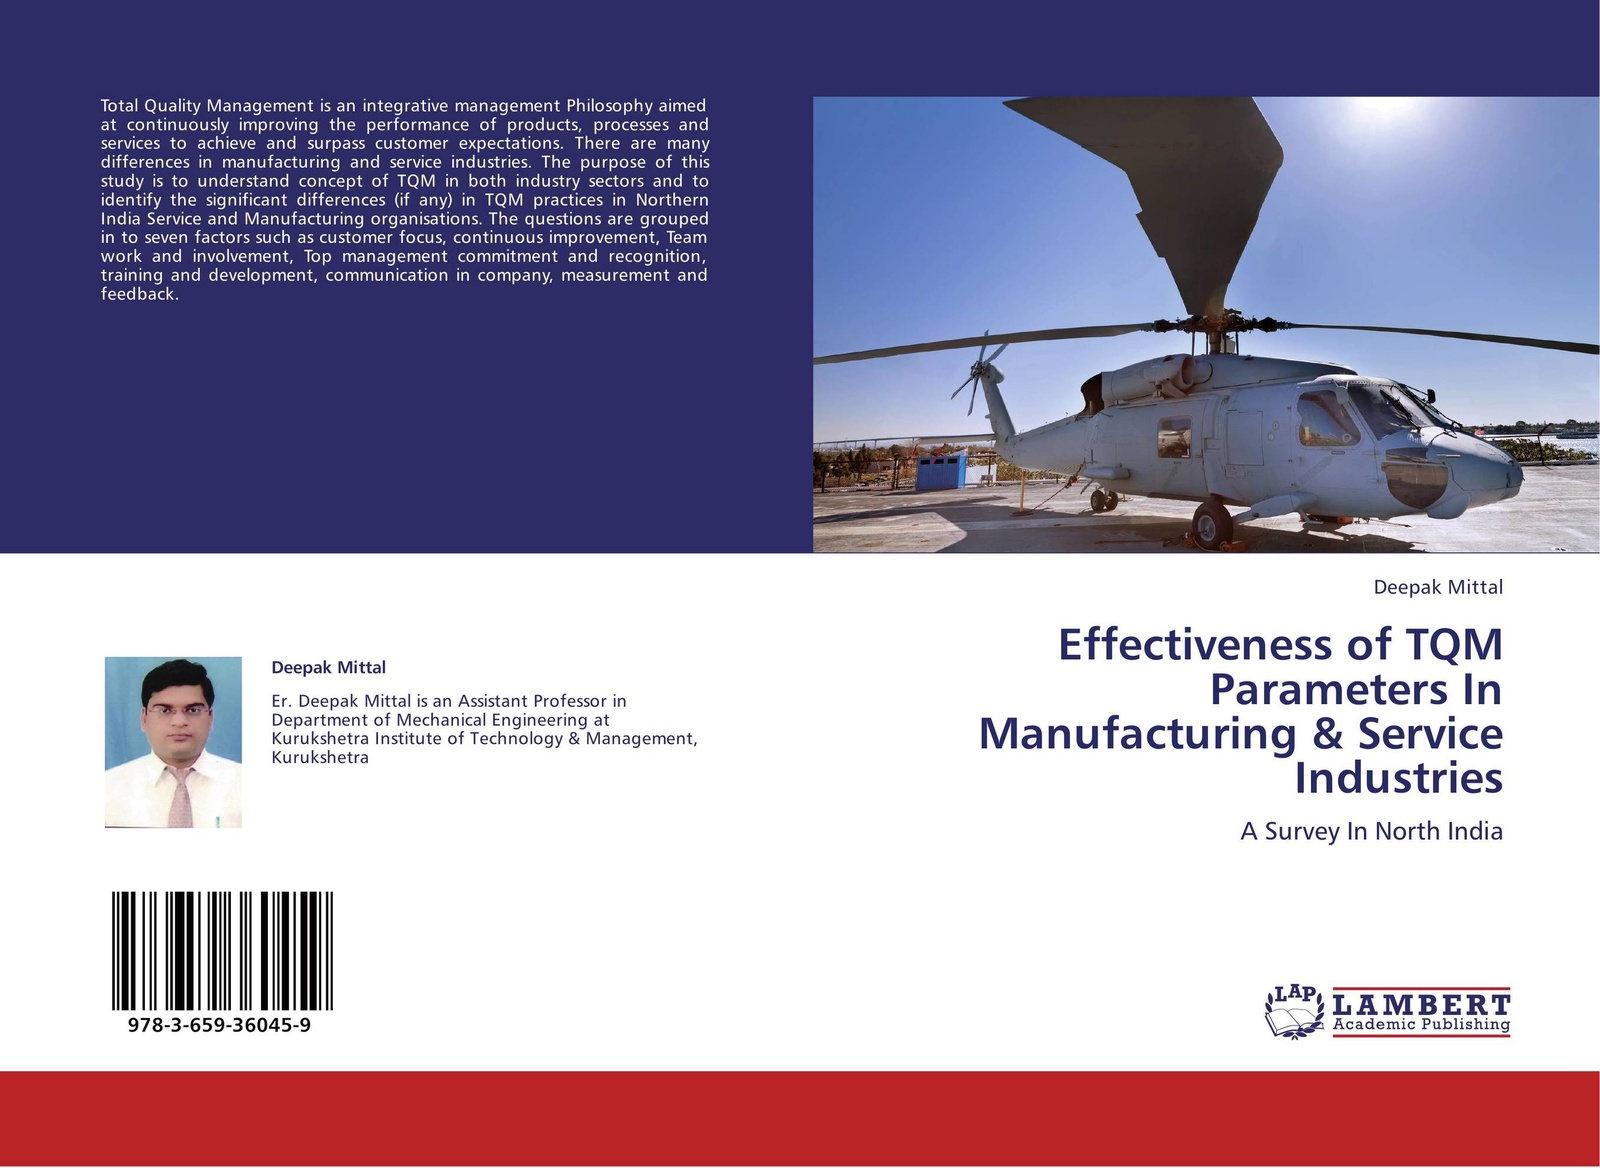 Deepak Mittal Effectiveness of TQM Parameters In Manufacturing & Service Industries abadal salam t hussain measurement techniques of total quality management tqm